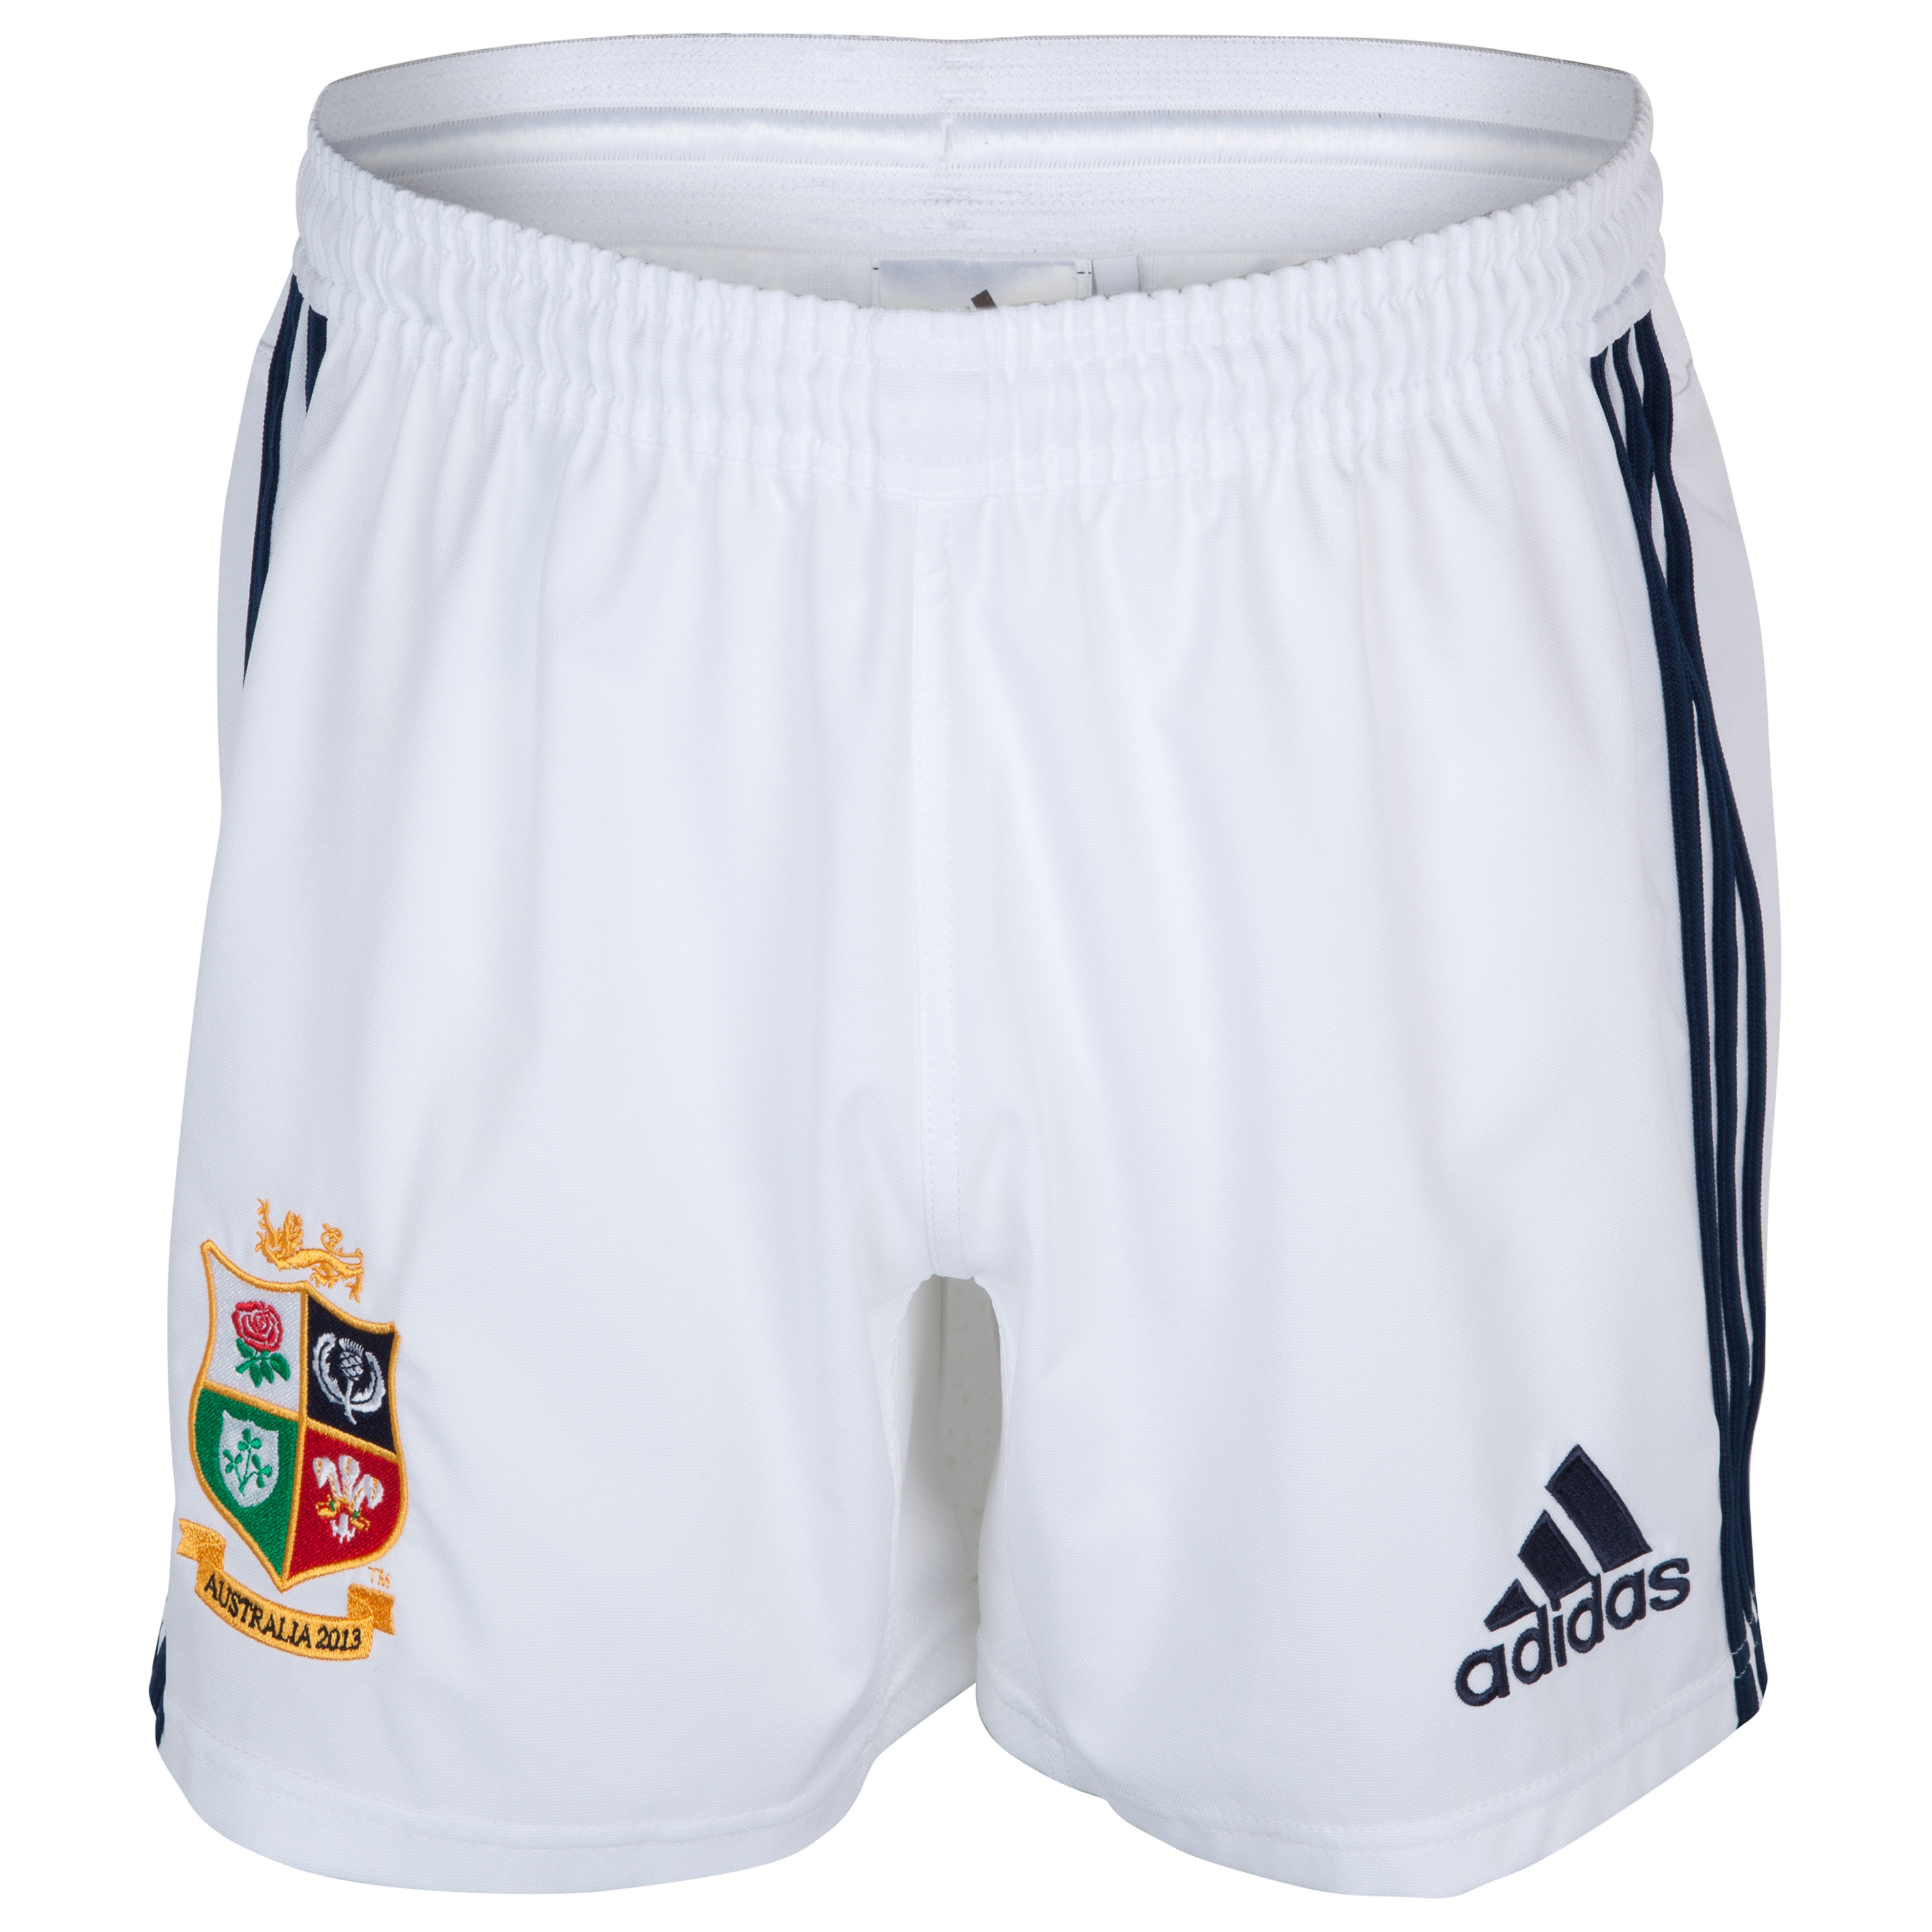 adidas British and Irish Lions Home Shorts 2013